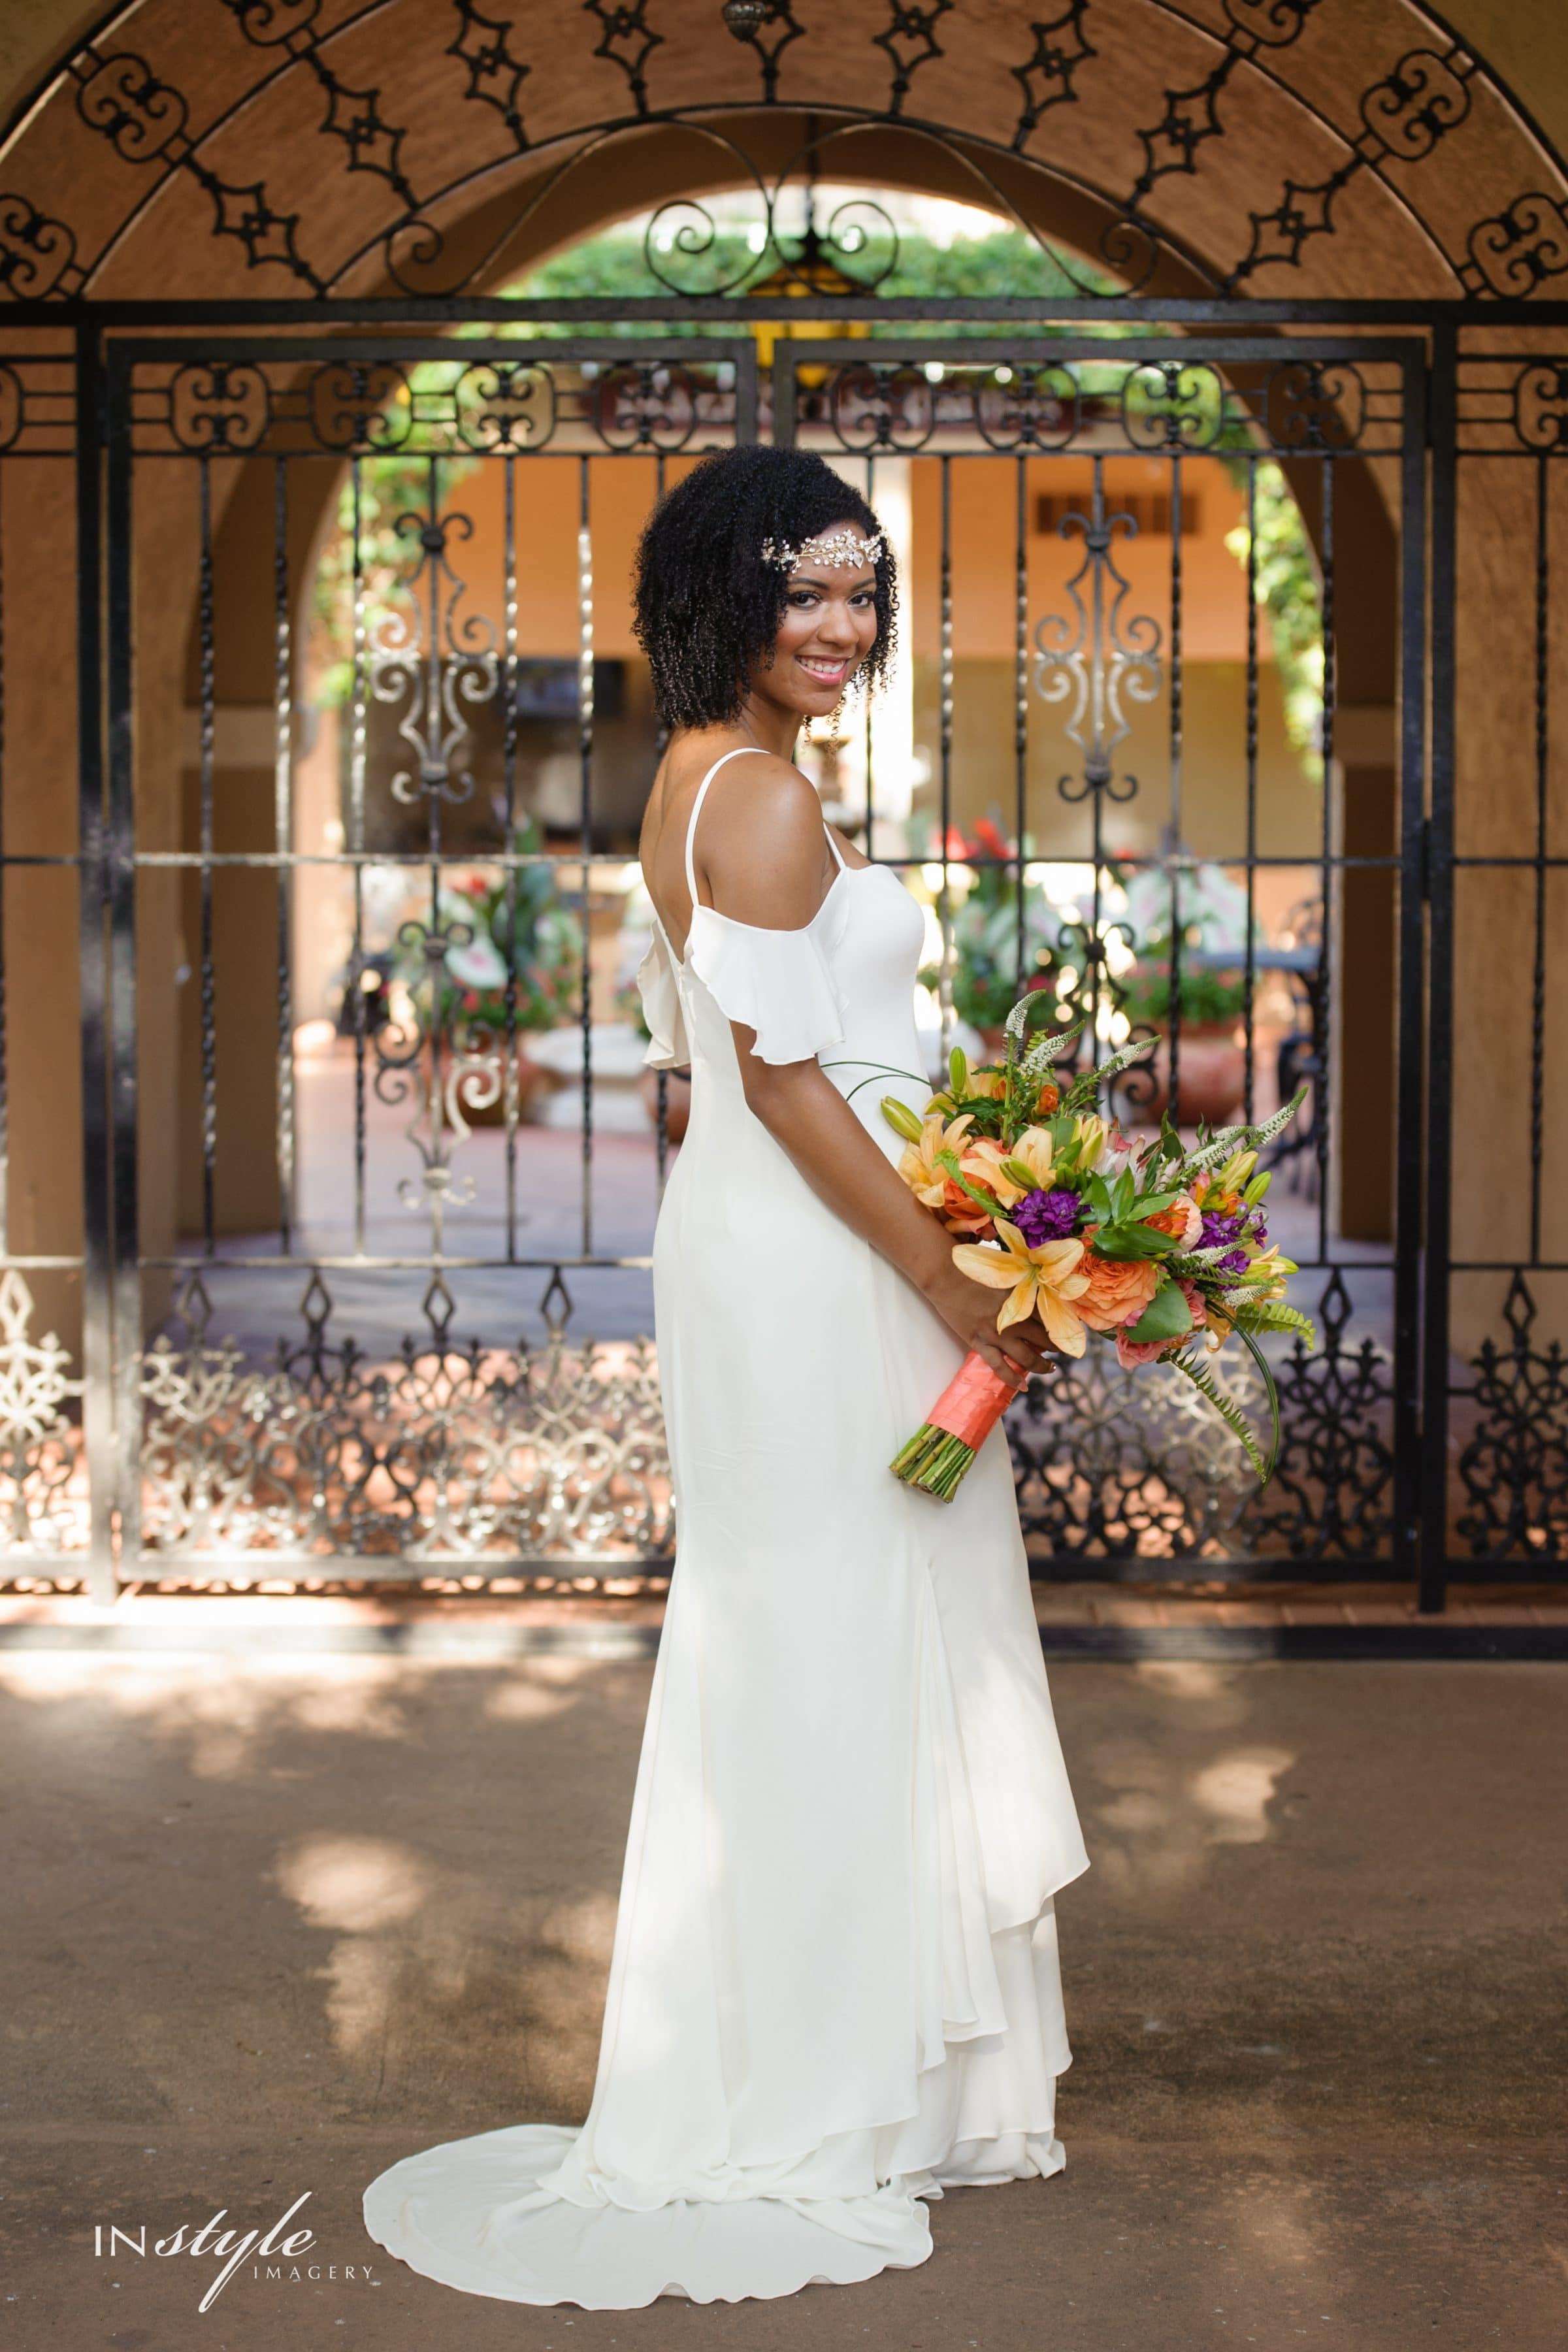 Bride Holding Palm Springs Inspired Wedding Bouquet in front of Mission Inn Iron Gate